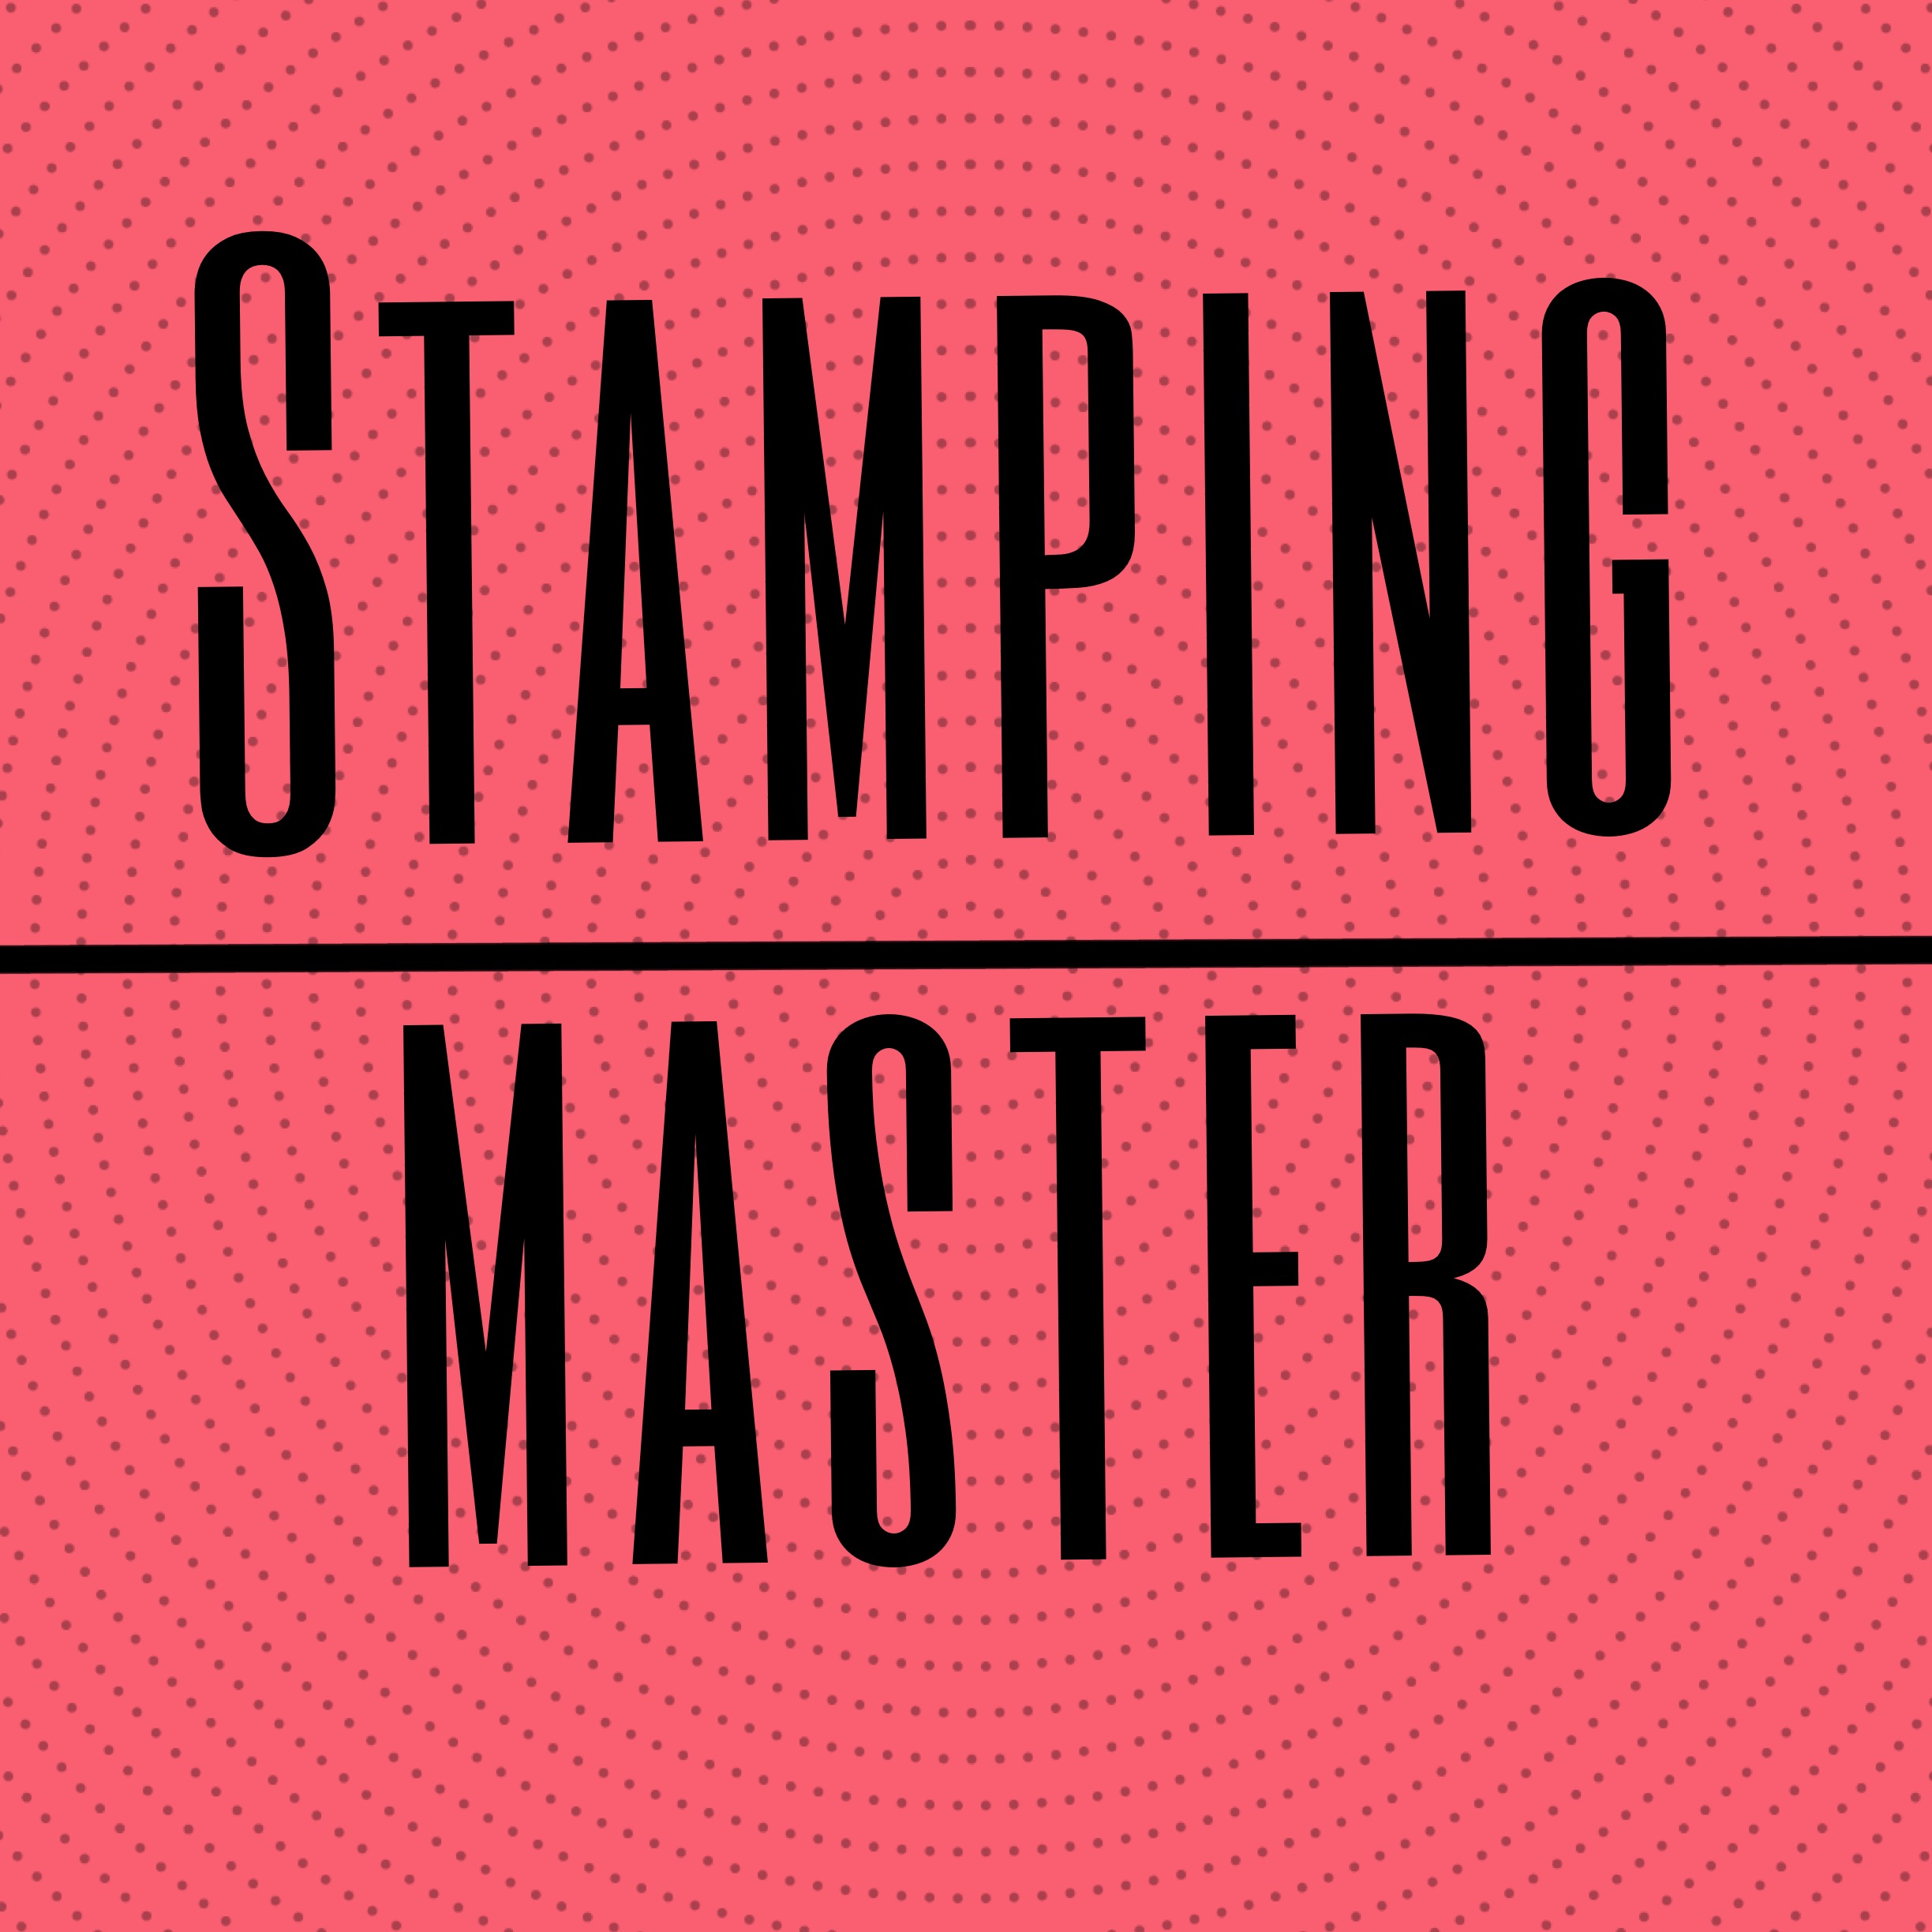 Stamping Master : My participations